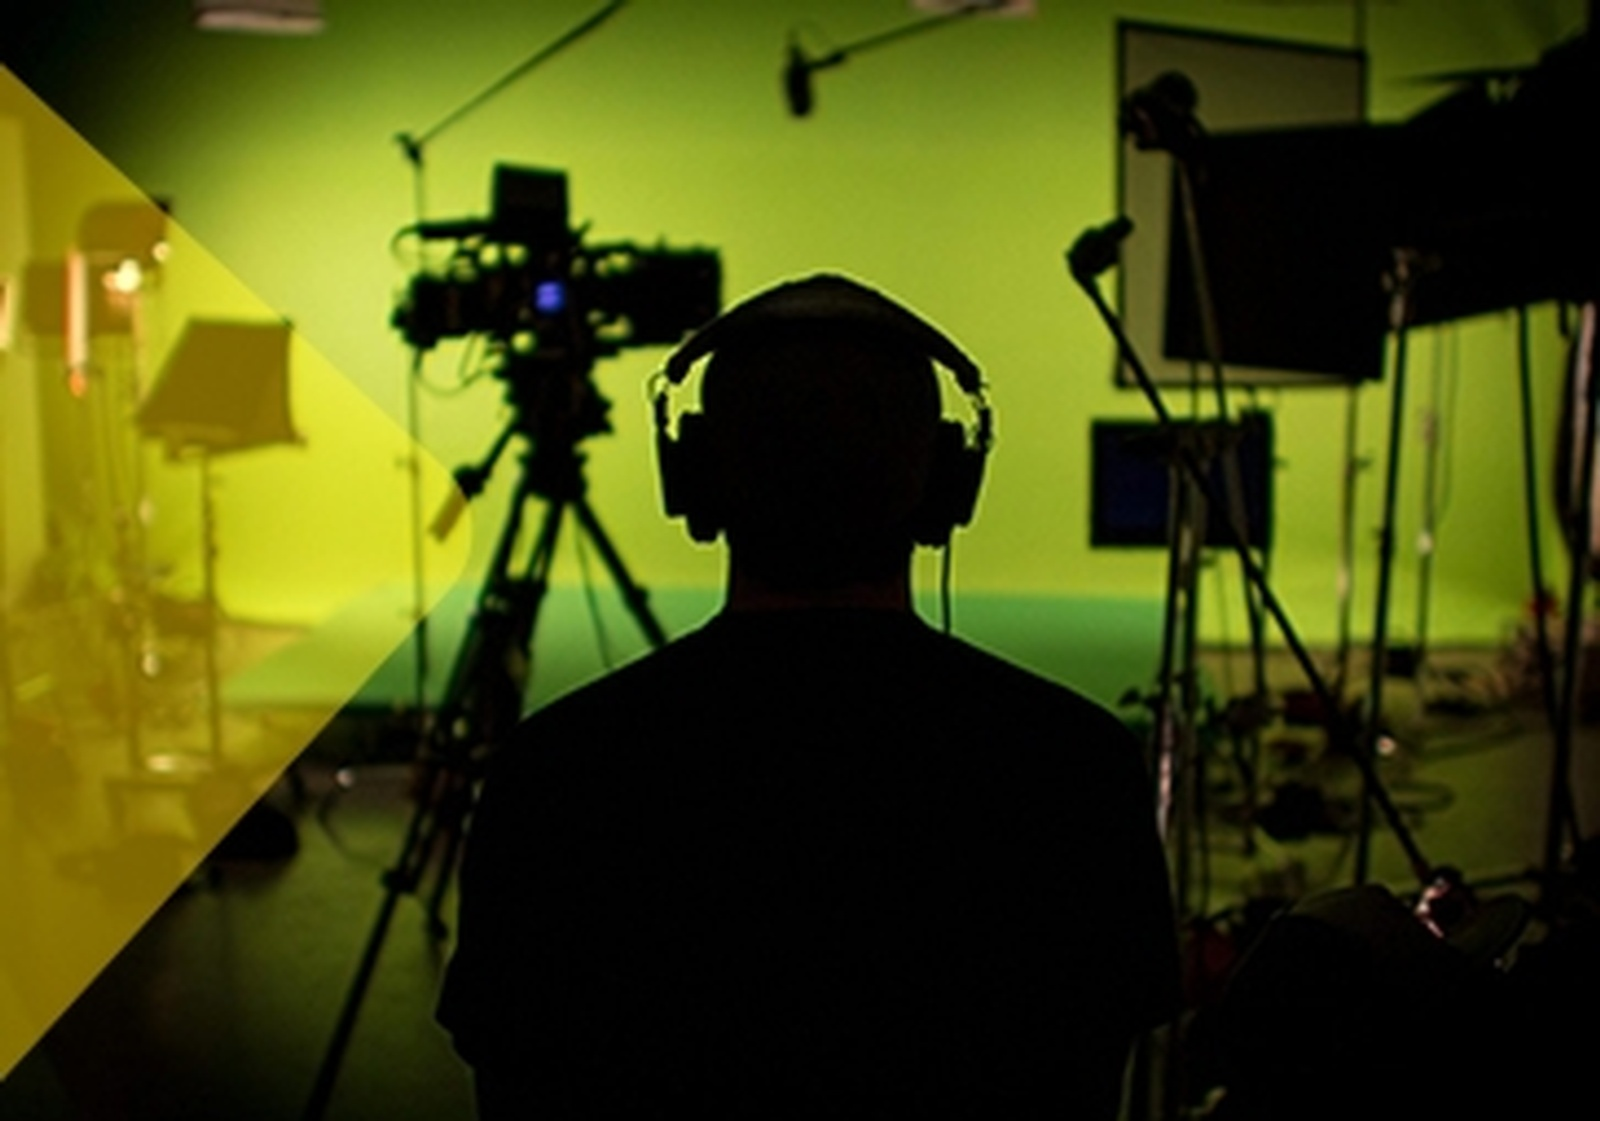 Production - We produce all things from traditional broadcast spots to digital. Working with our award-winning partners, we've created and produced TV, webseries, websites, apps, events and more.